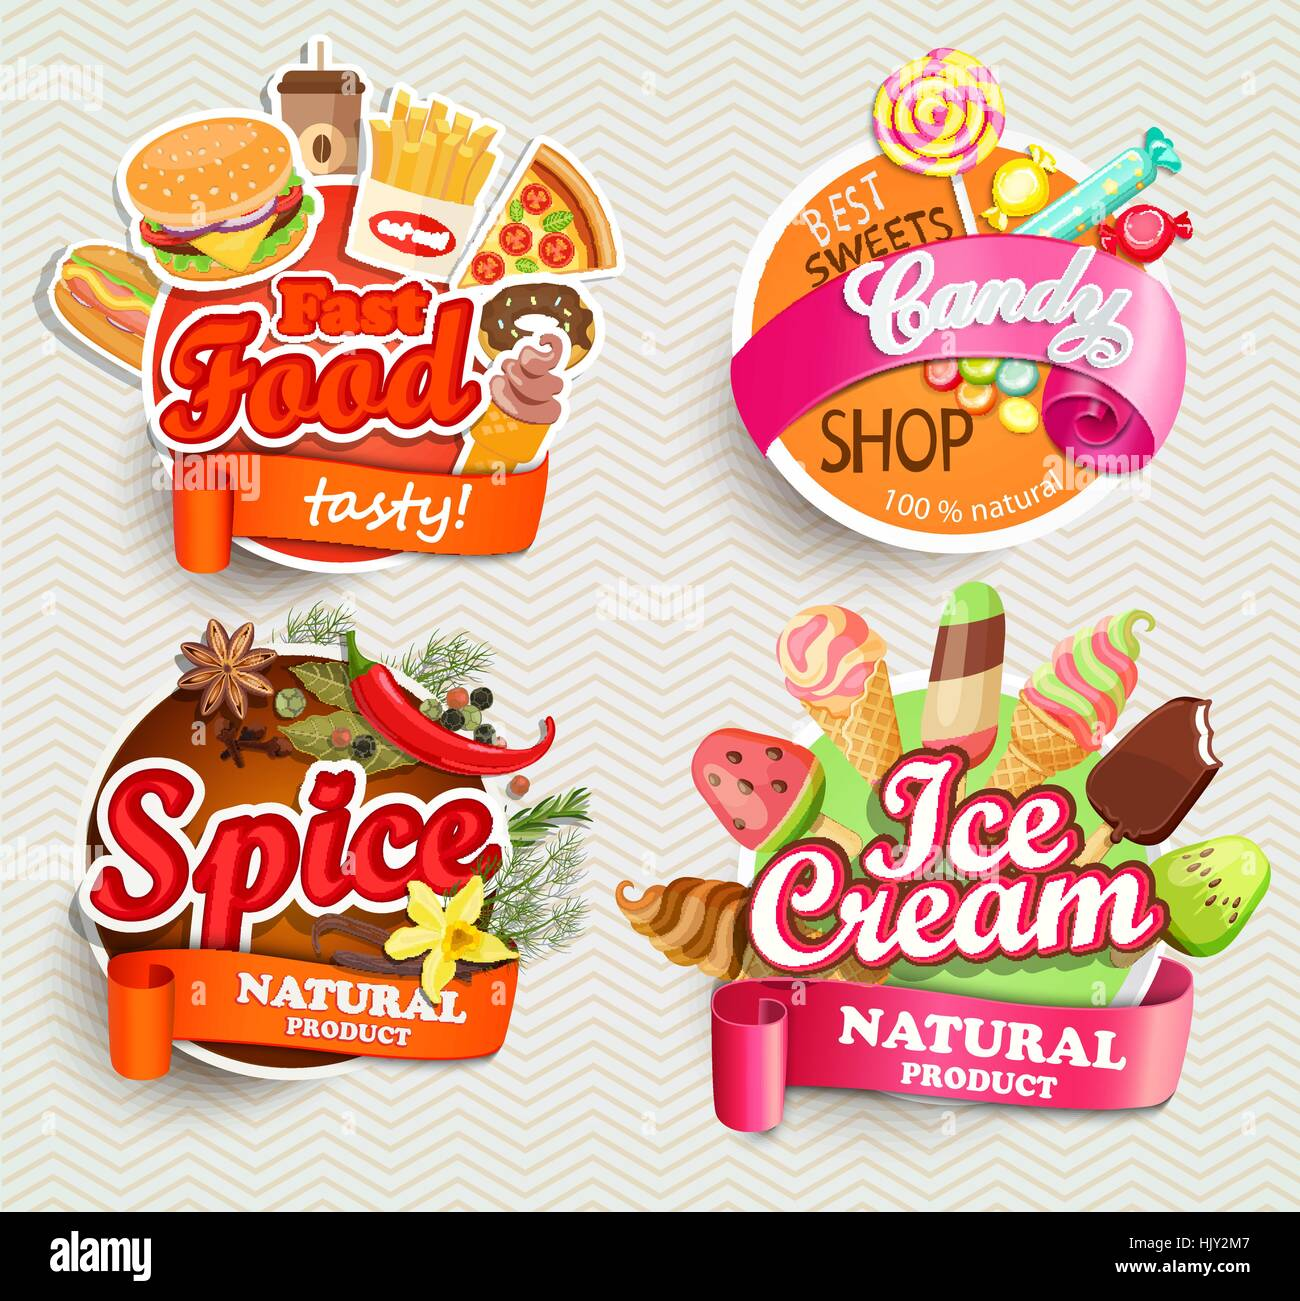 Food and drink elements, Typographical Design Label or Sticker